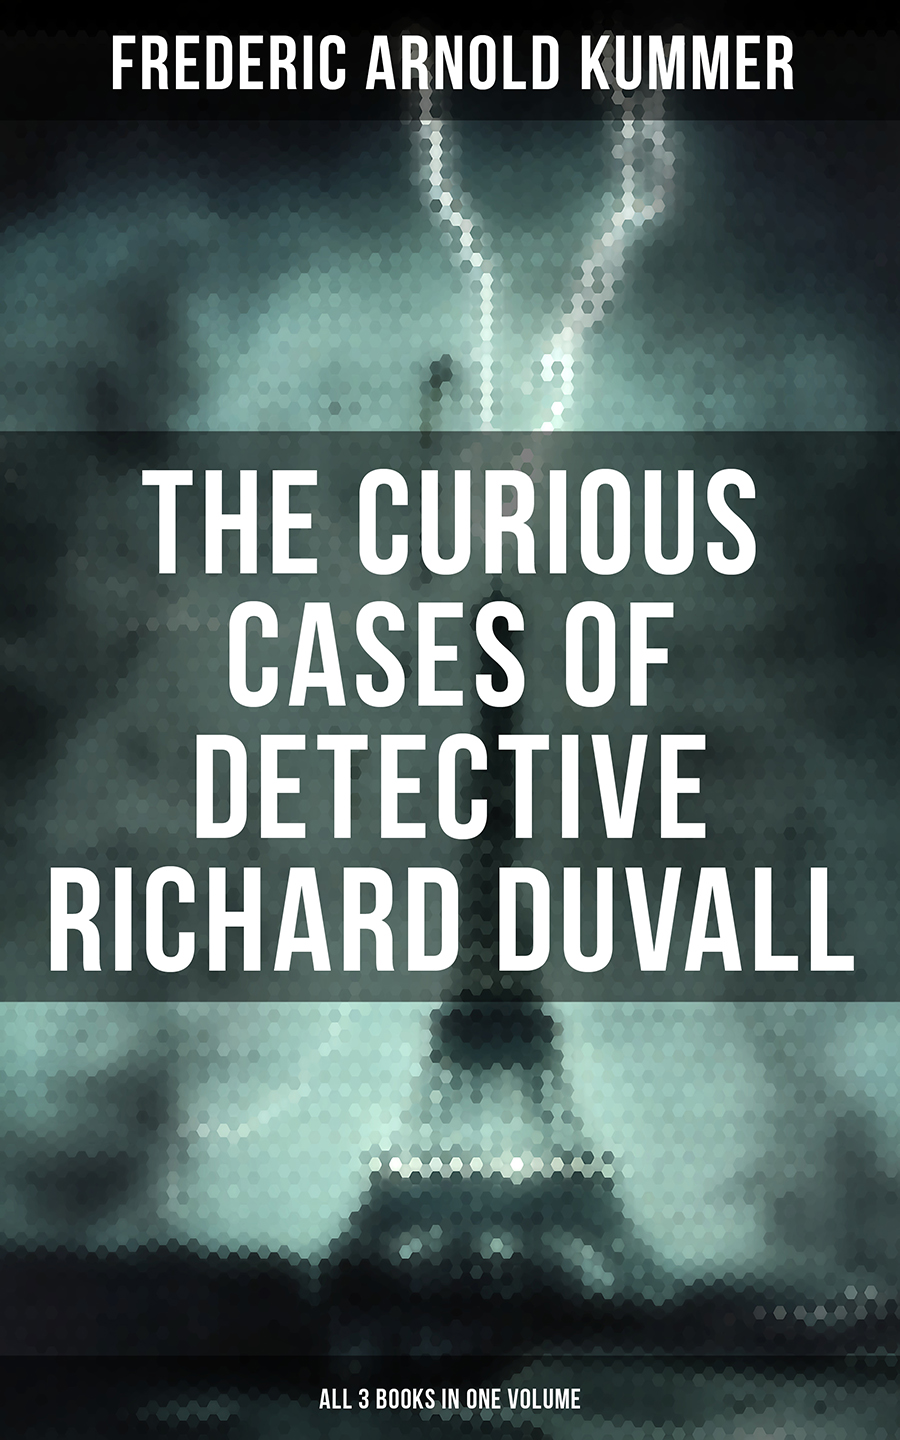 Frederic Arnold Kummer The Curious Cases of Detective Richard Duvall (All 3 Books in One Volume) richard wagner richard mansfield xml all in one desk reference for dummies